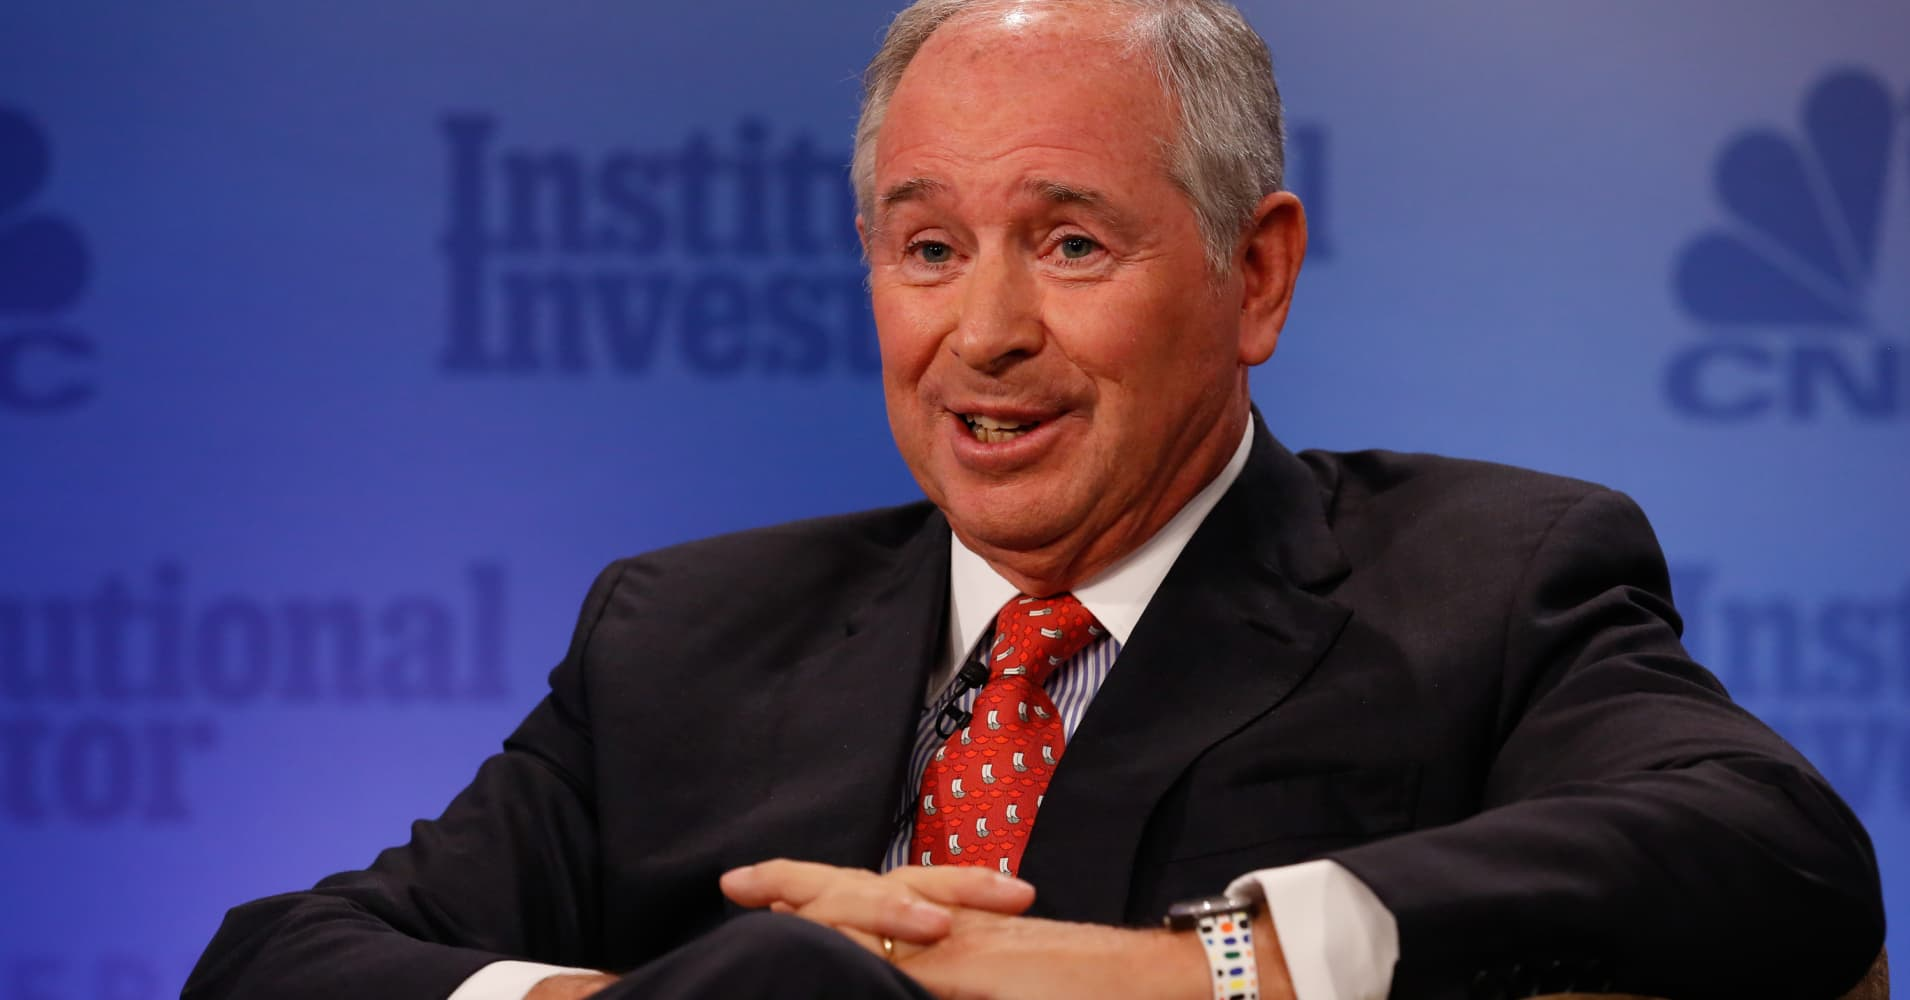 Blackstone's Schwarzman on tax reform: 'This is a whopper'